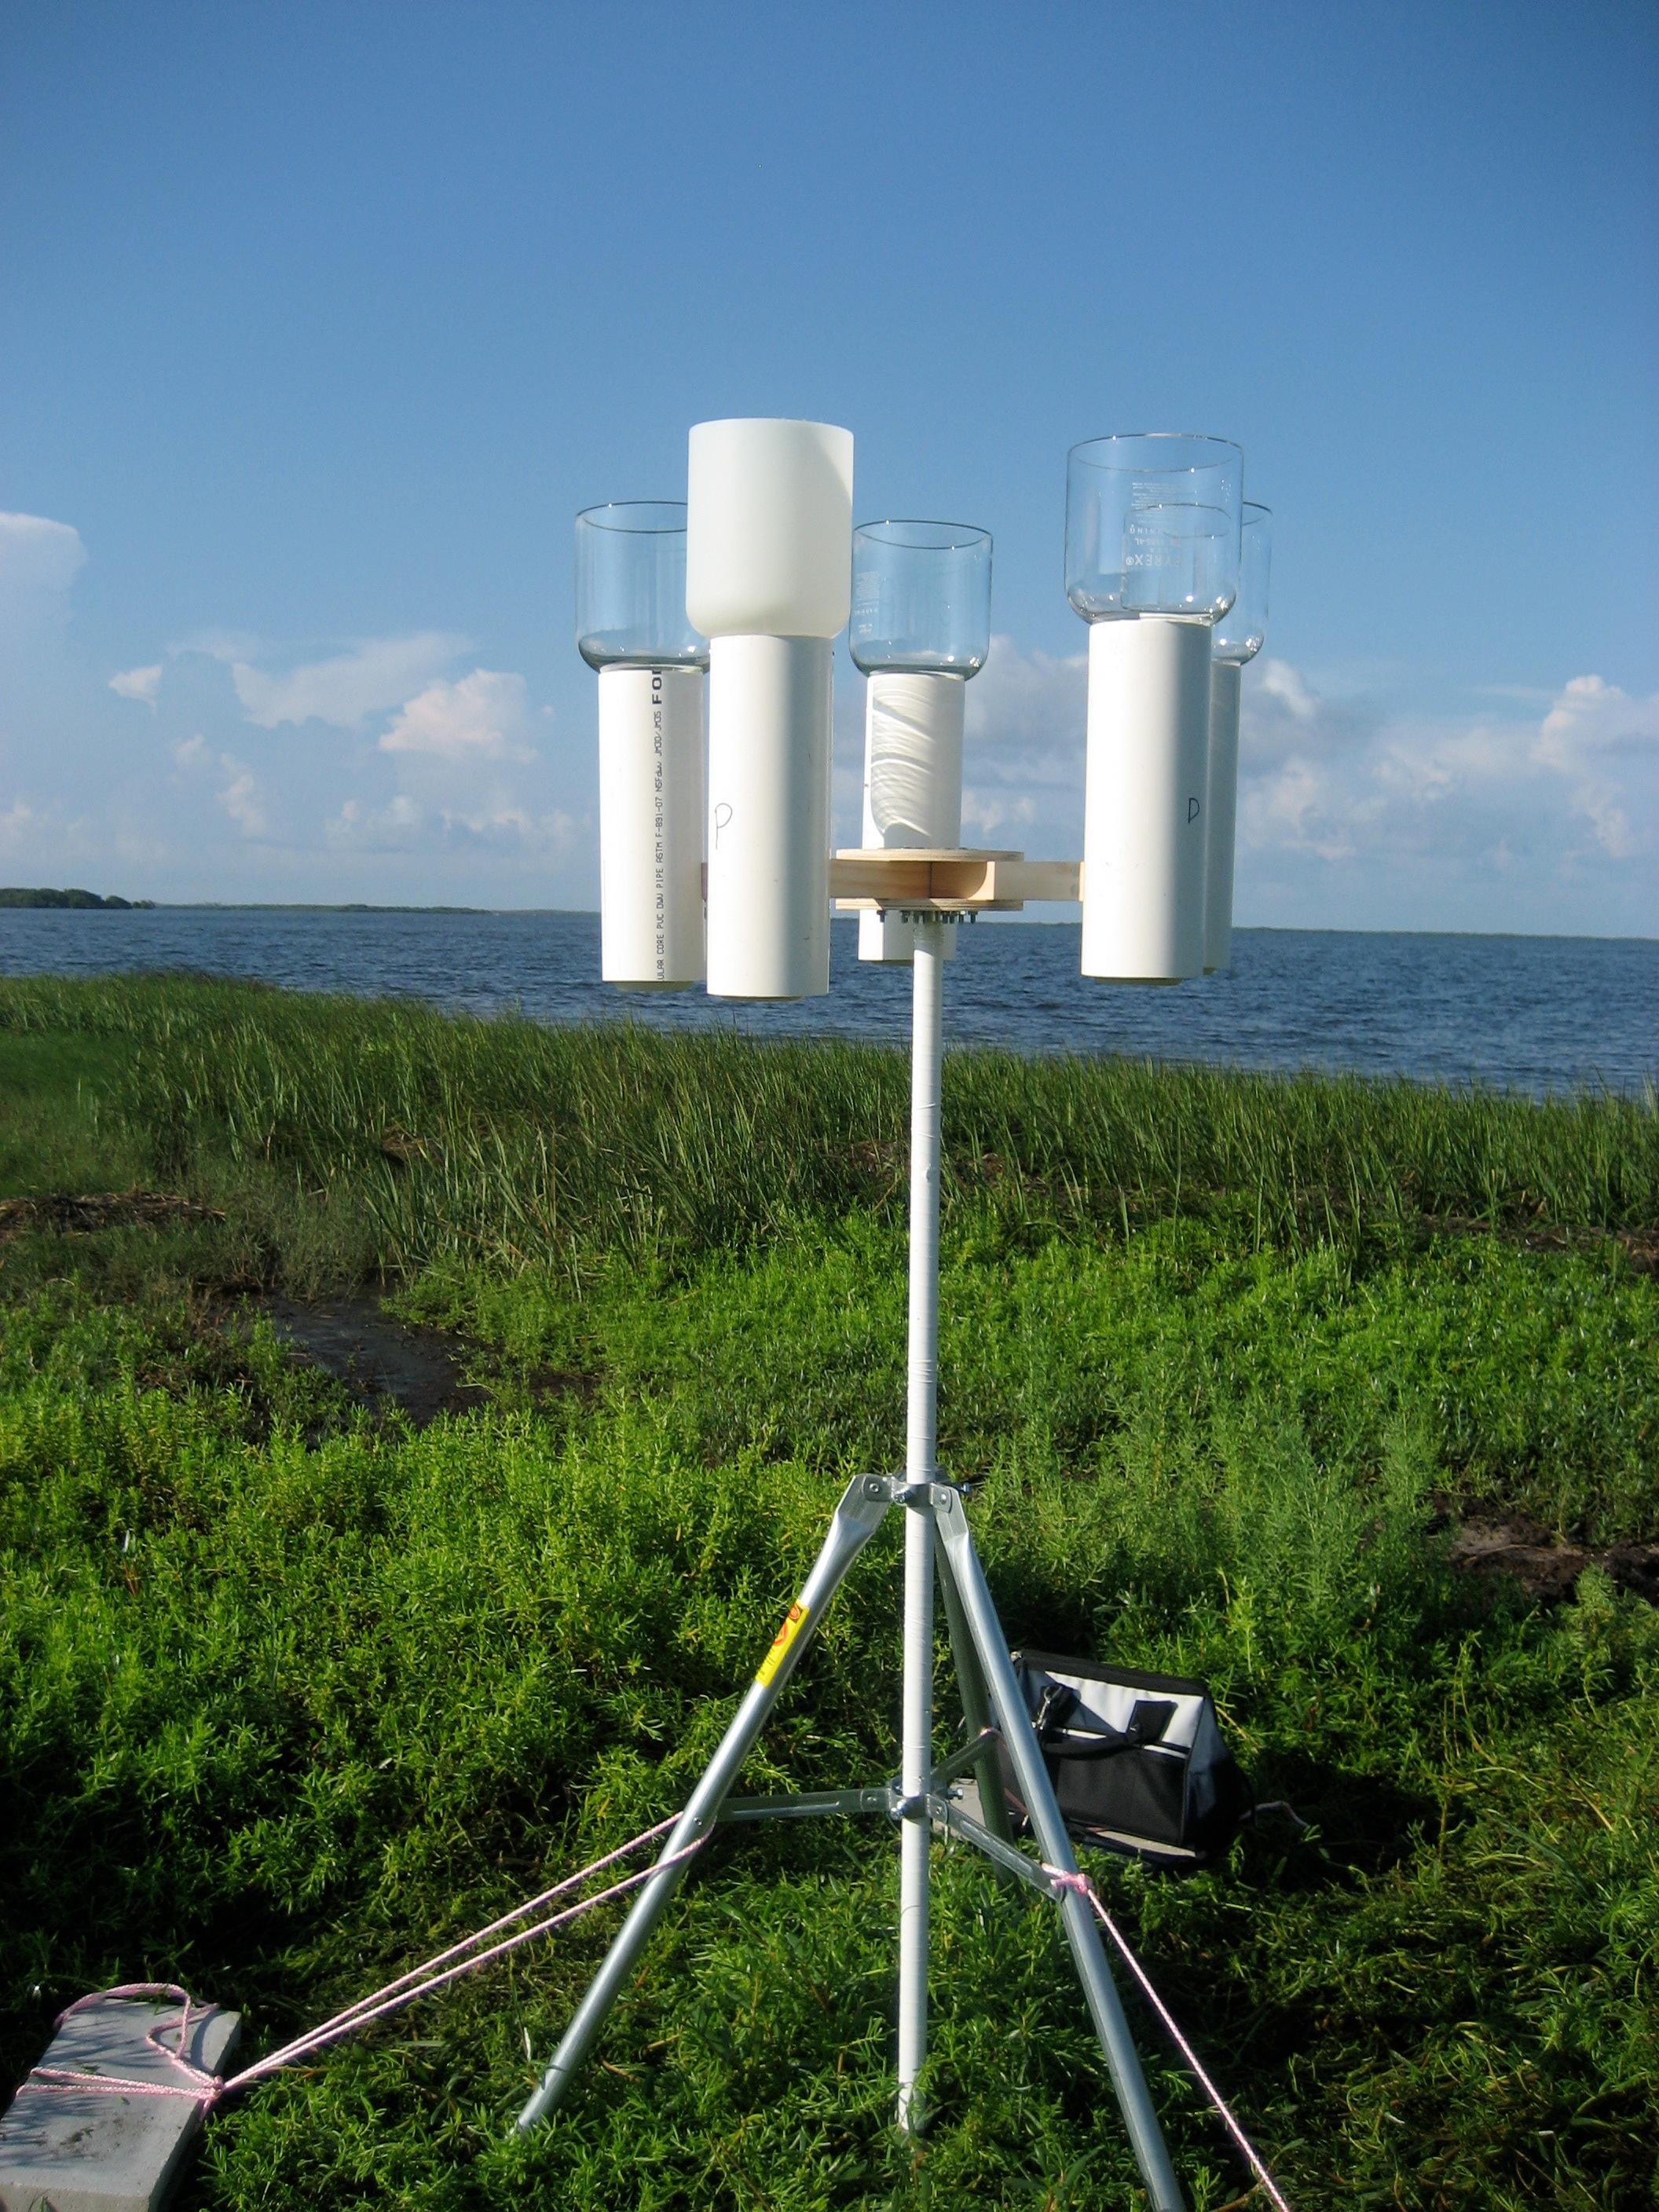 Sampling tripod with funnels to collect precipitation.  This study site was located on the Gulf of Mexico coast near Crystal River, Florida. Photo courtesy of Laura Sherman